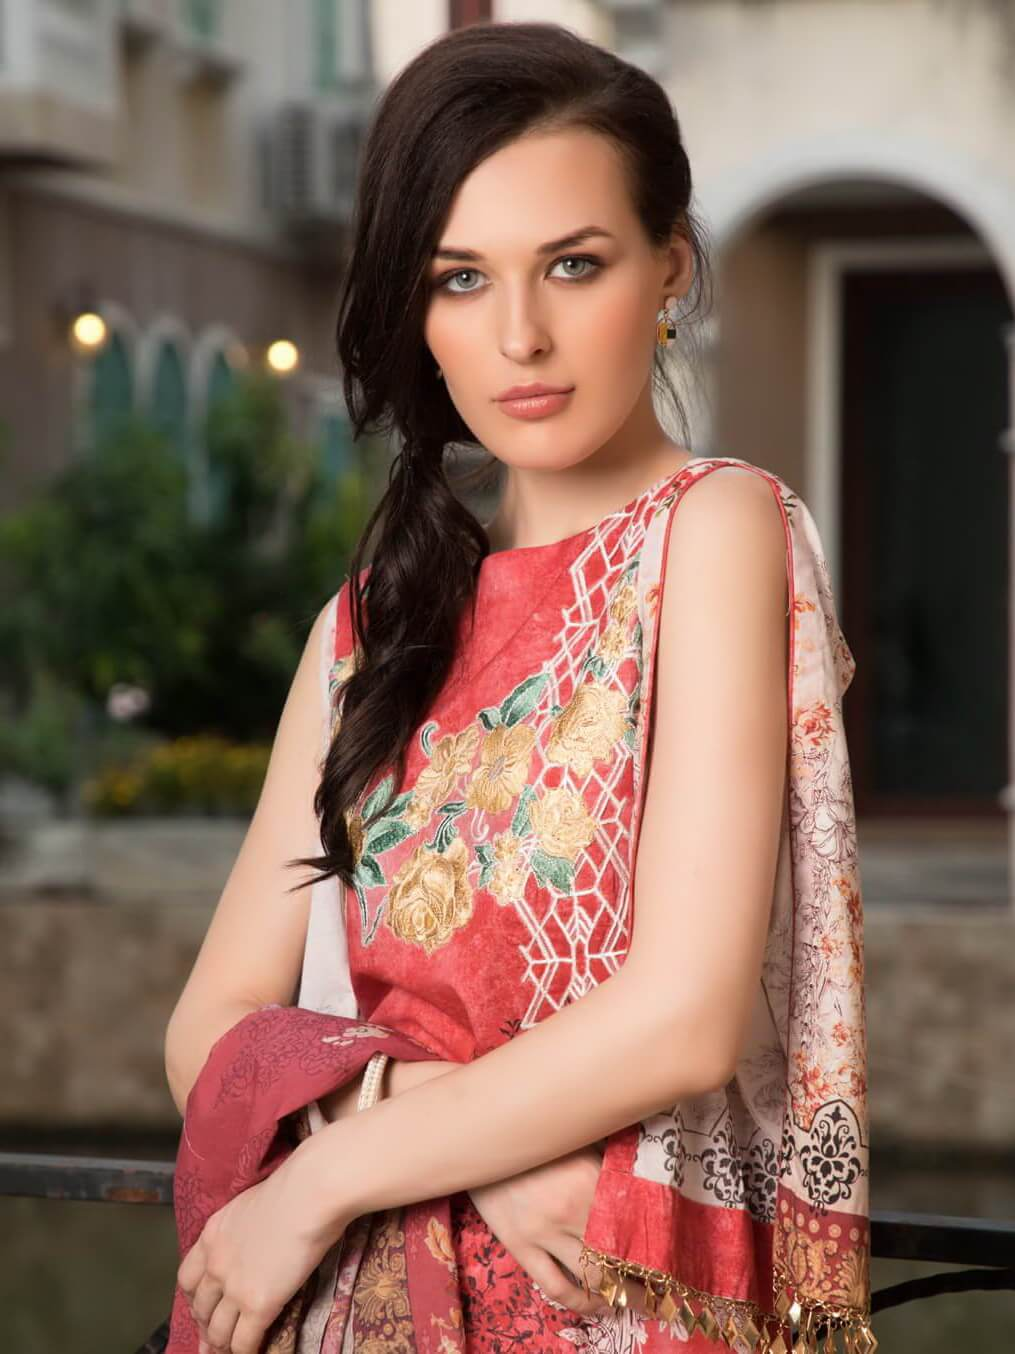 KHAS Designer Lawn Collection 2019 Unstitched 2PC Suit RKL-13021 - FaisalFabrics.pk